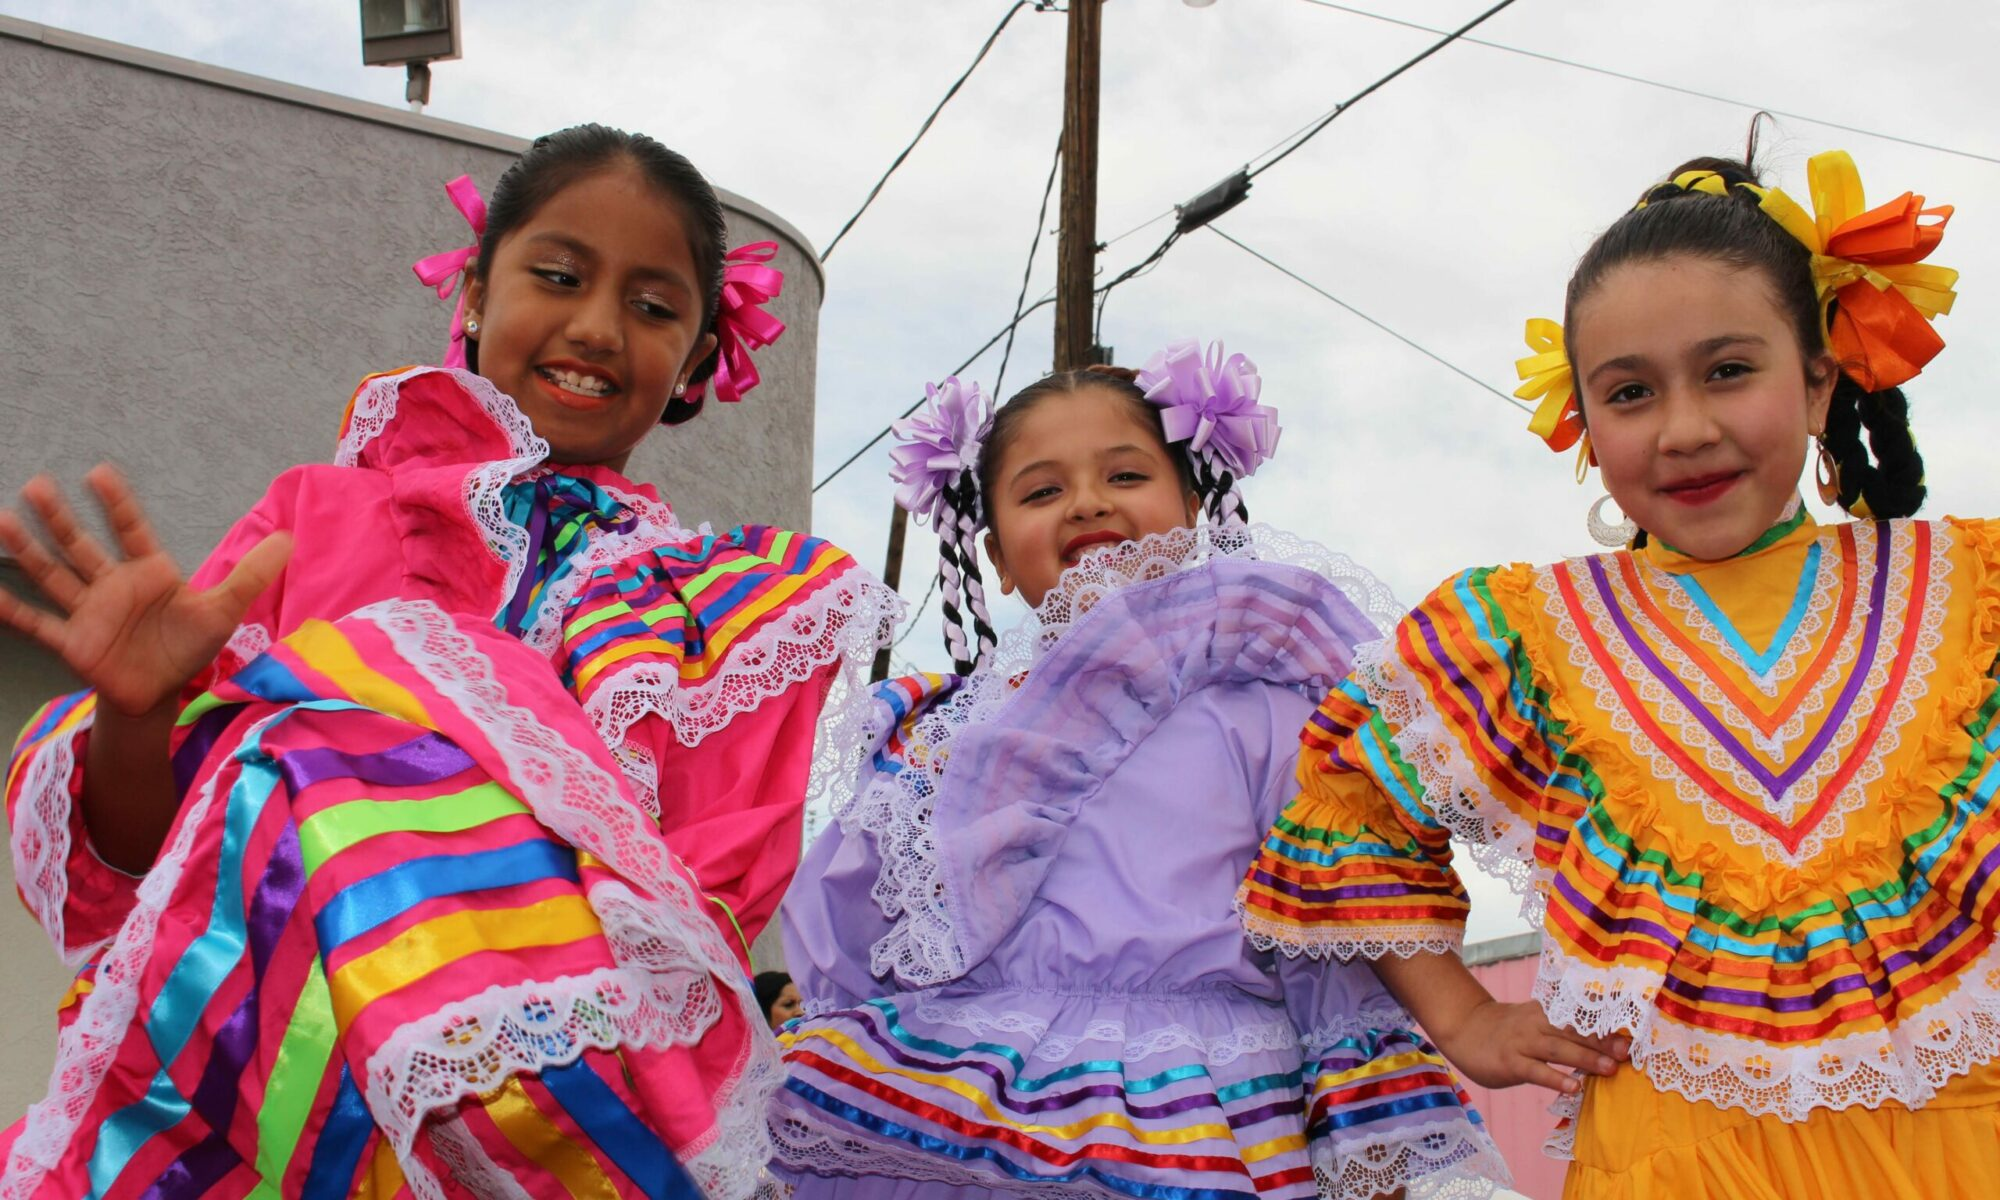 Three young girls after their performance of ballet folklorico at a Reno event celebrating Mexico's Independence Day